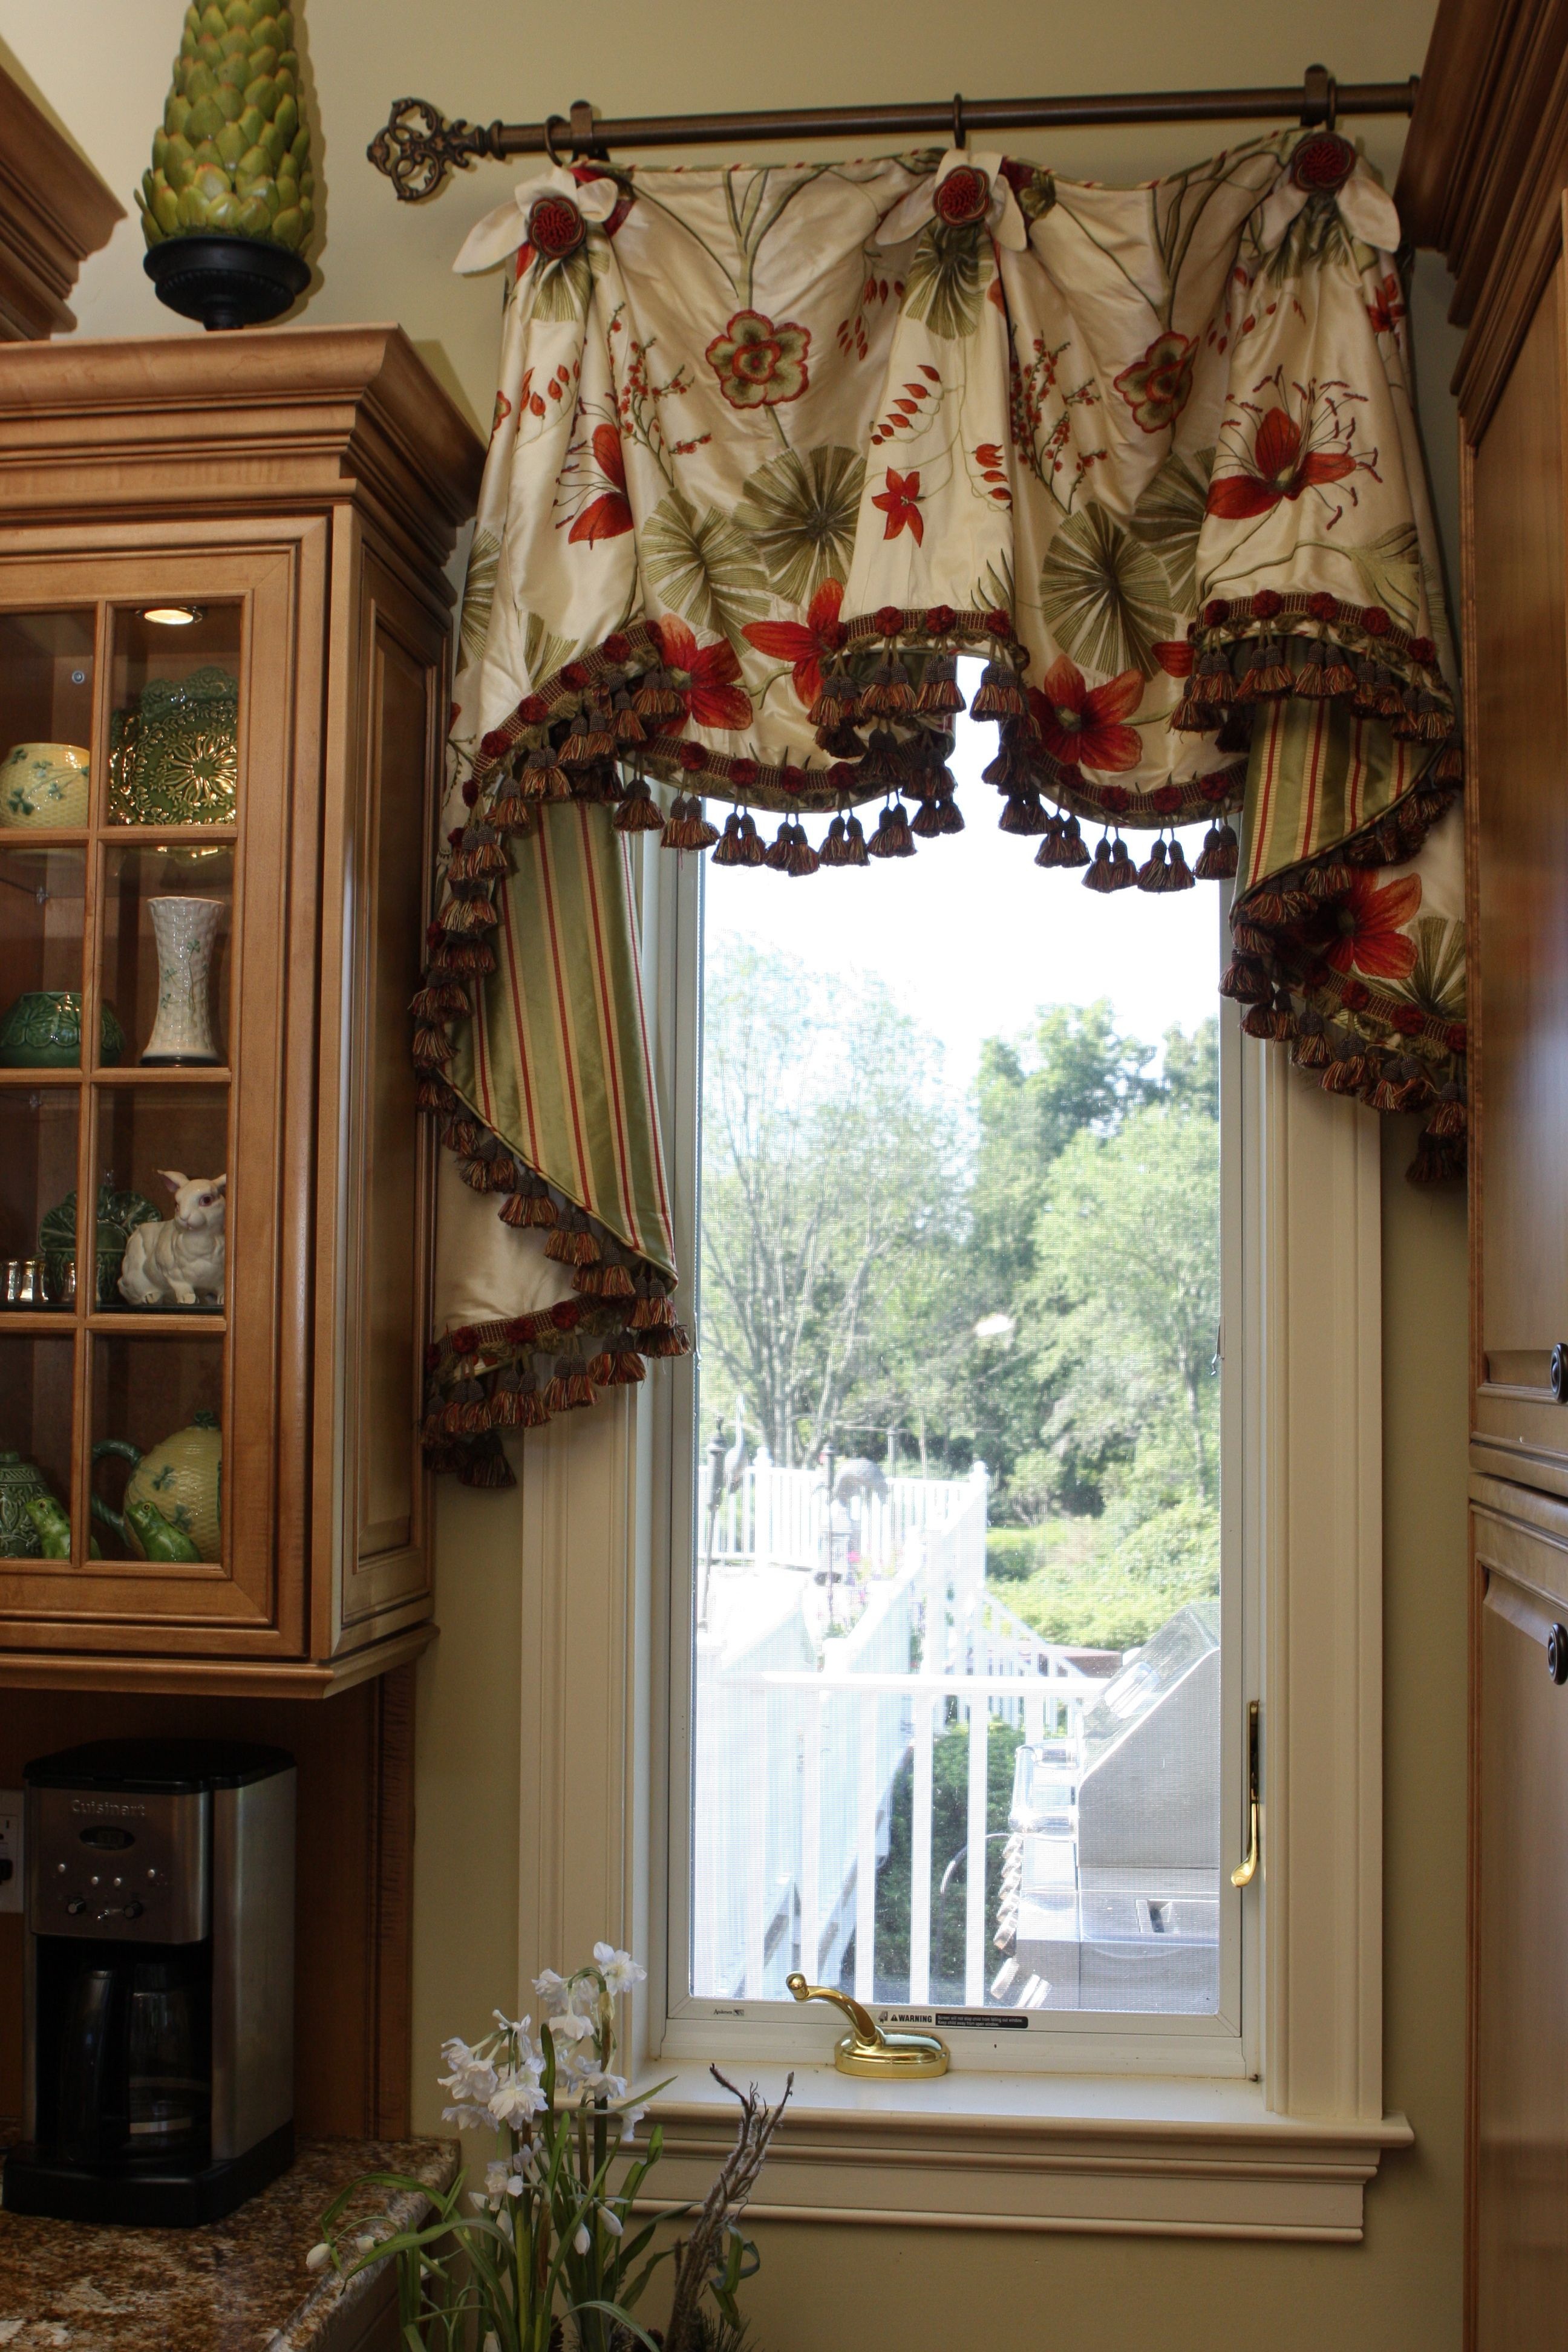 This Scalloped Valance With Bells Amp Jabots Enhances The